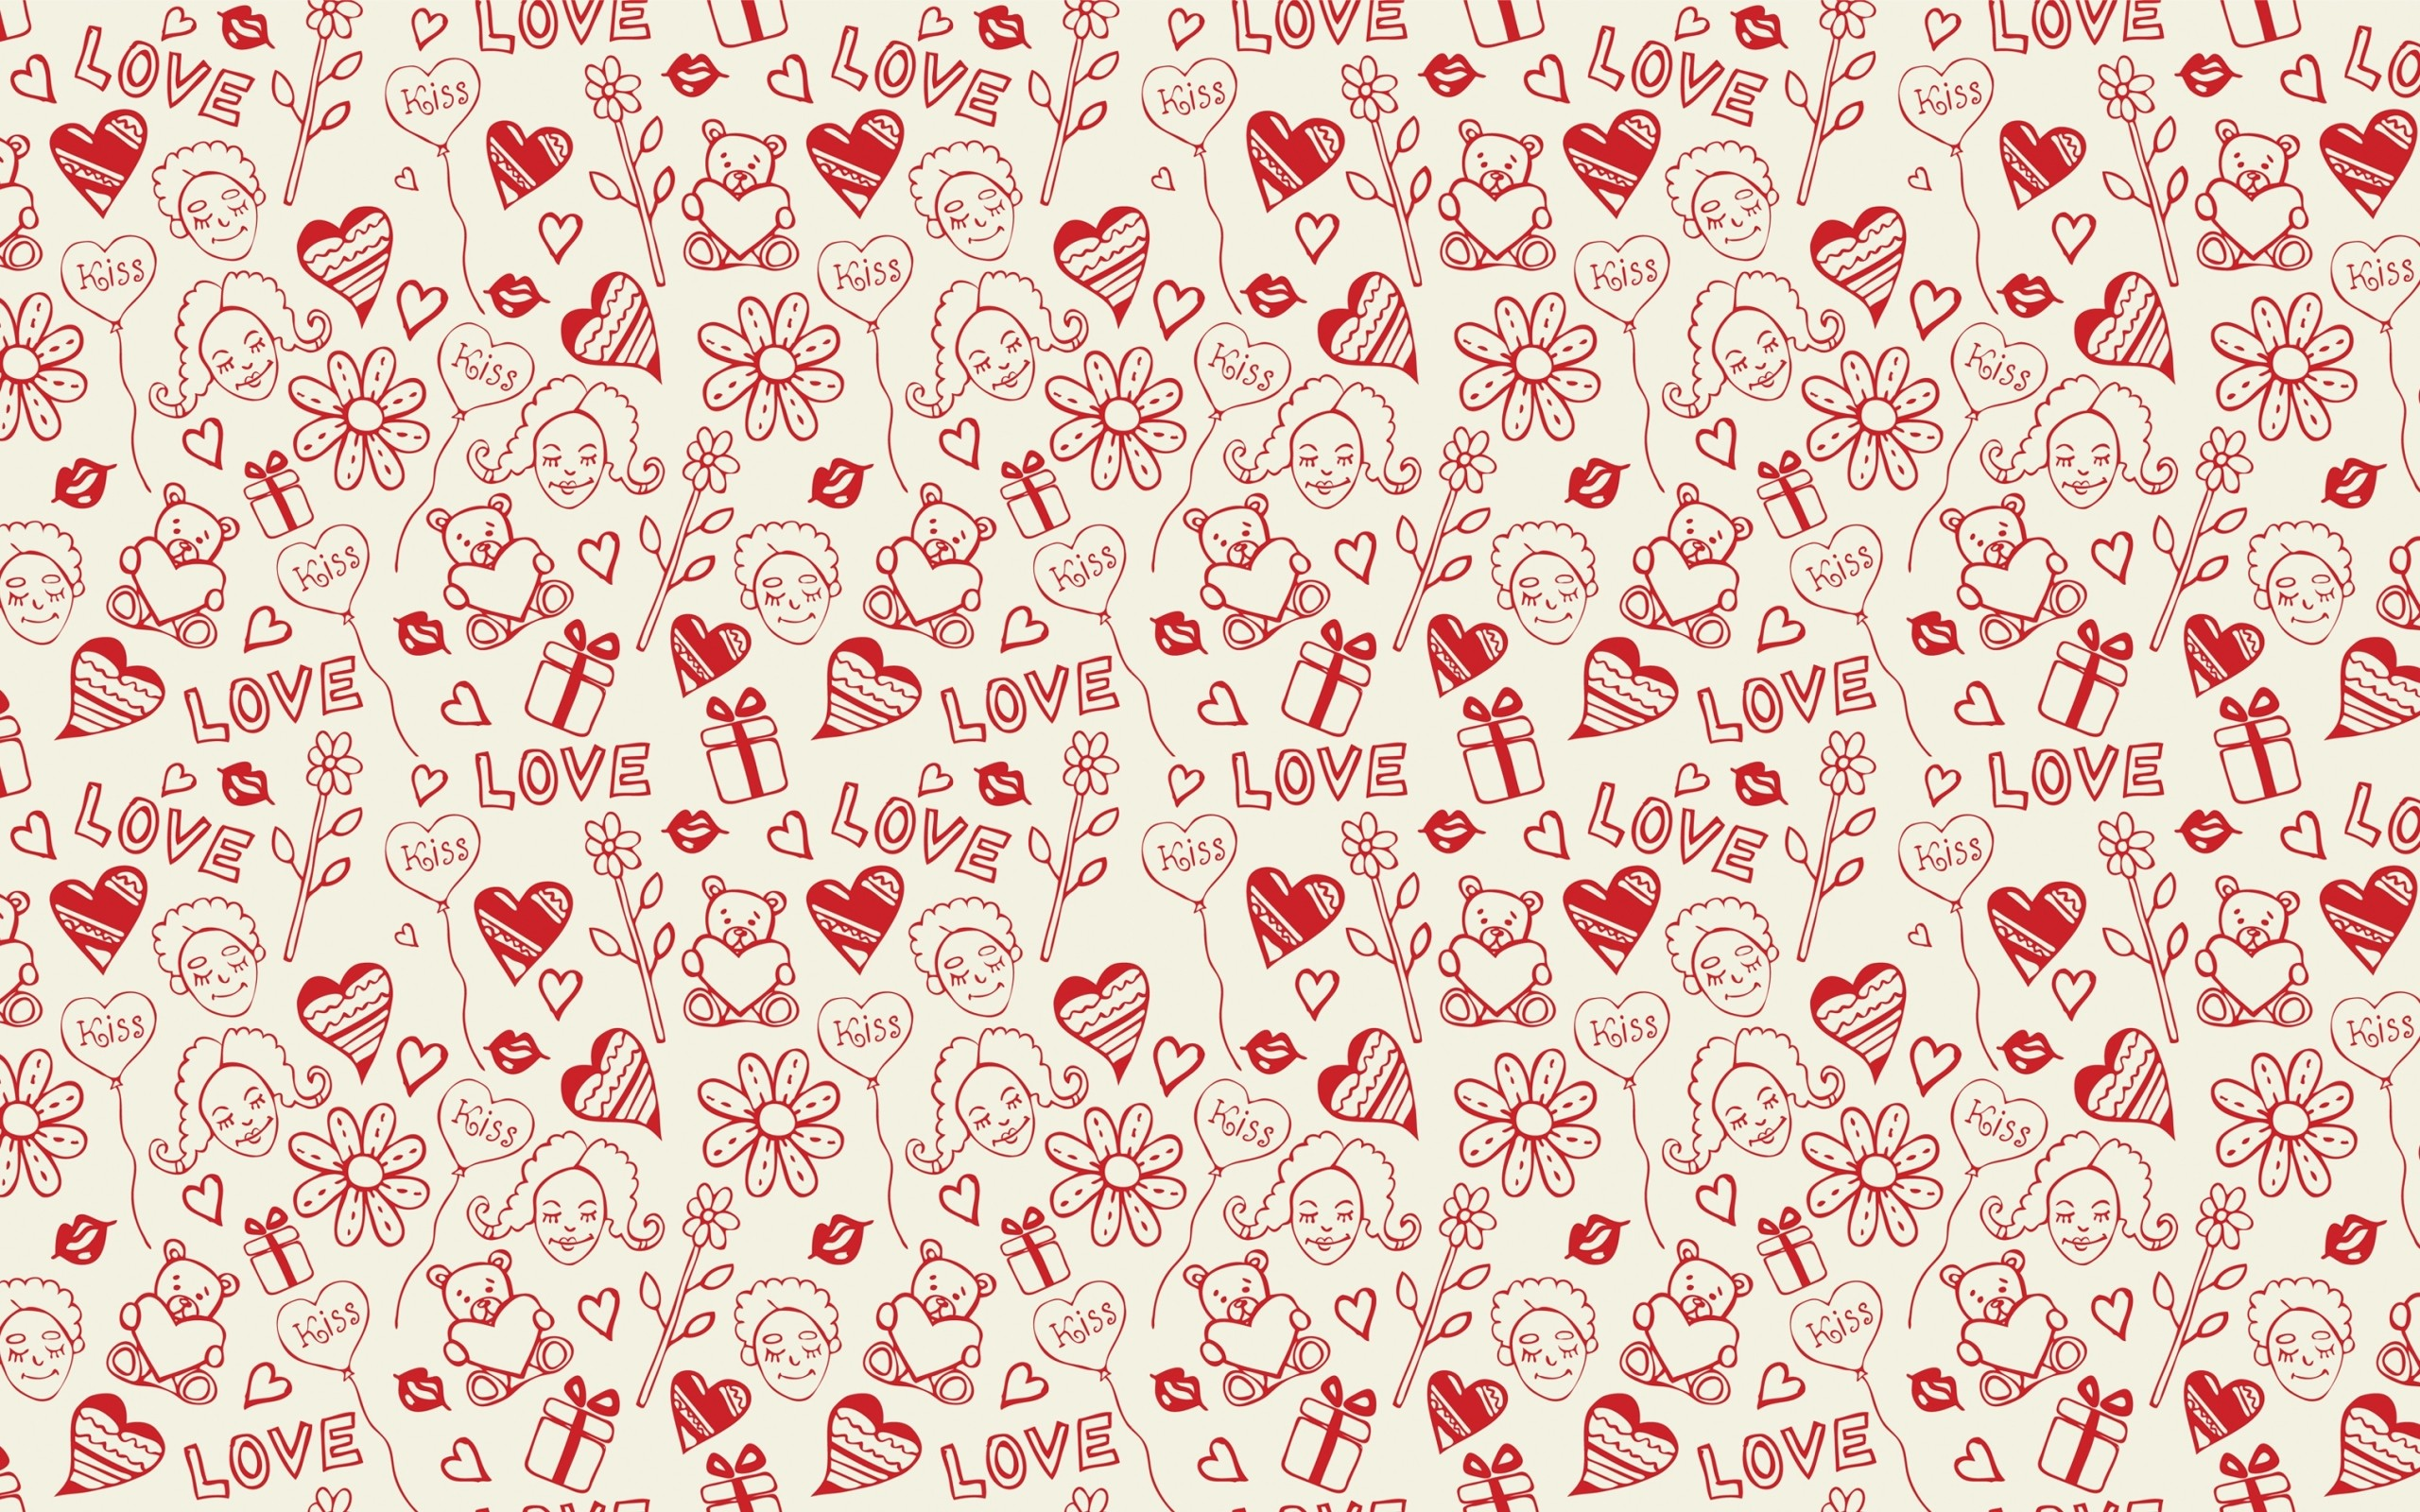 71 Heart Backgrounds 1 Download Free Full HD For